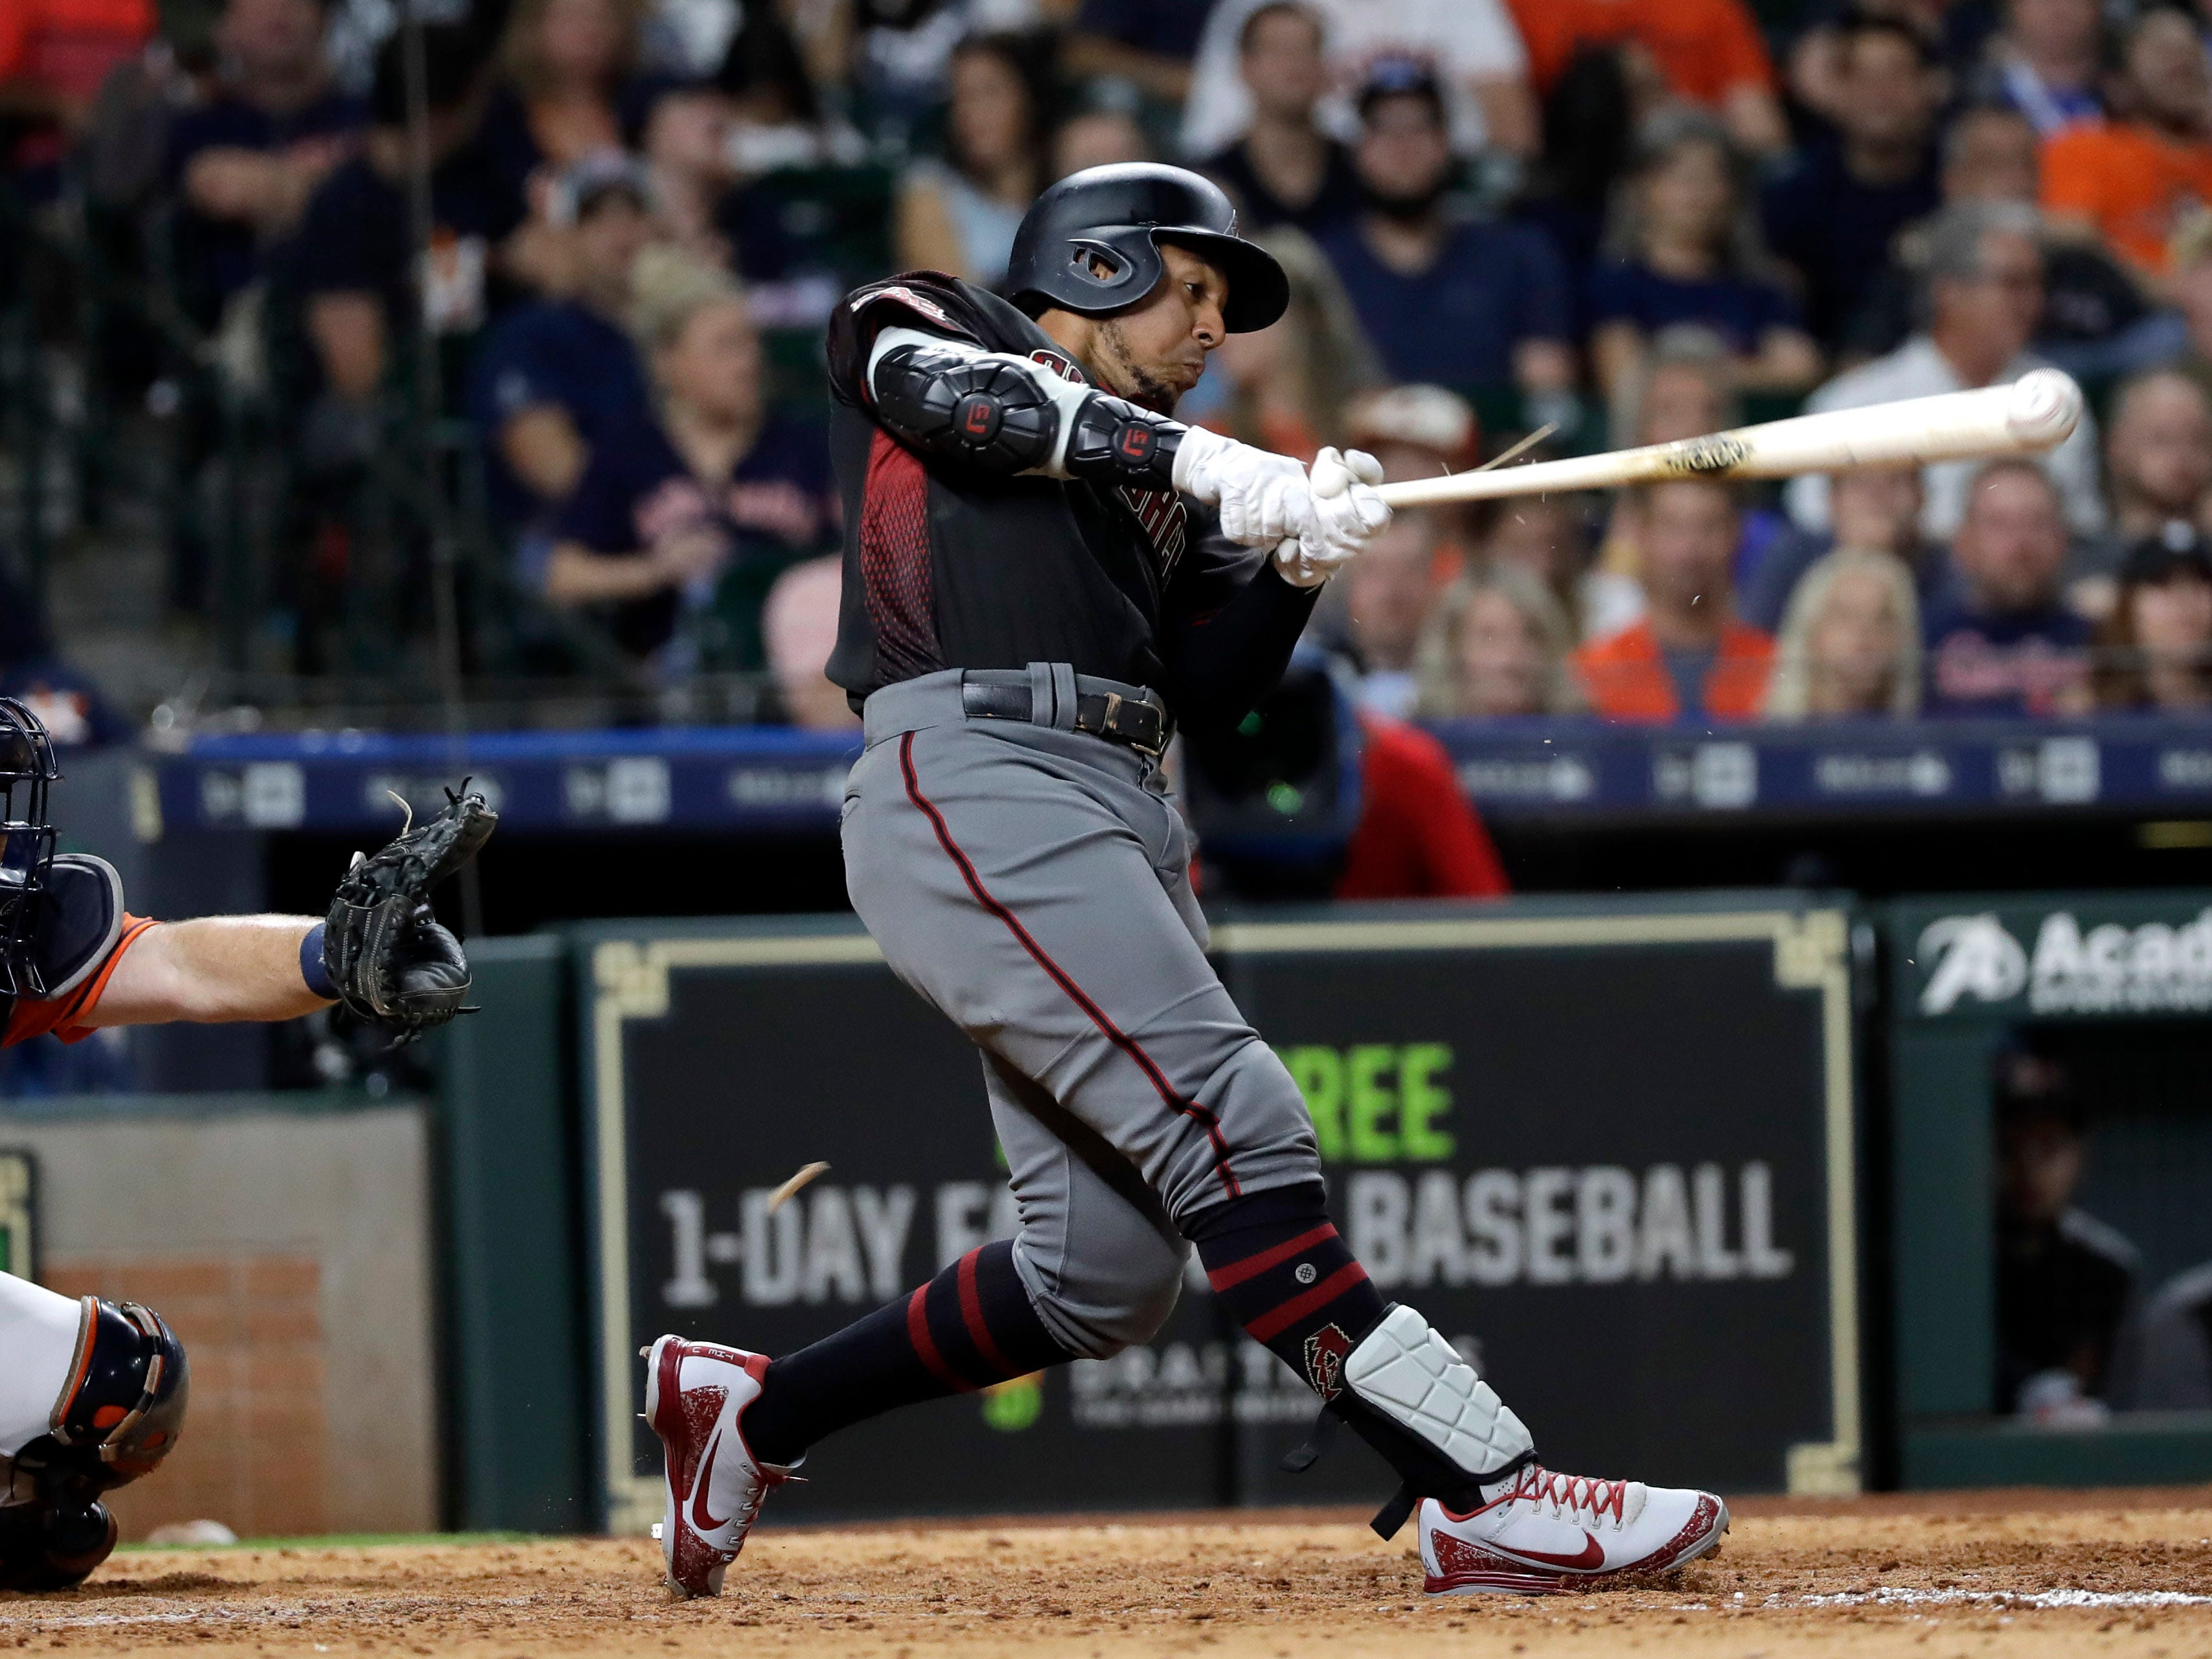 Arizona Diamondbacks' Jon Jay, right, hits a triple to score Nick Ahmed as Houston Astros catcher Brian McCann reaches for the pitch during the eighth inning of a baseball game Friday, Sept. 14, 2018, in Houston.